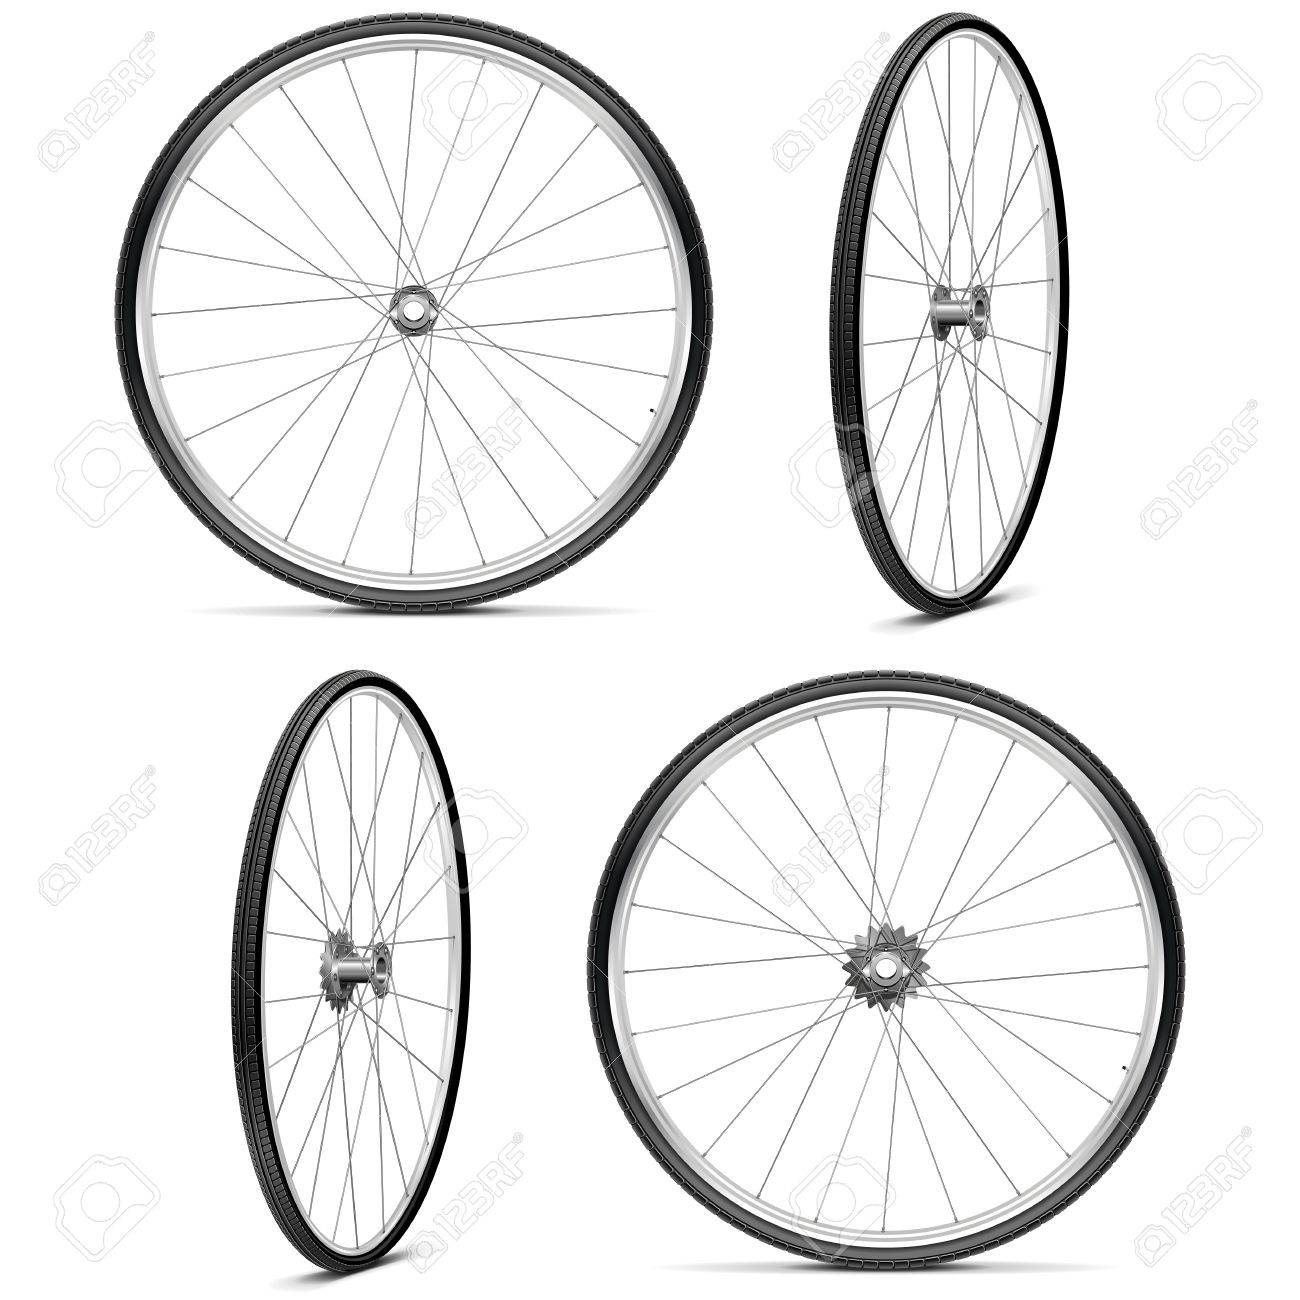 Vector Bicycle Wheels isolated on white background - 38108373